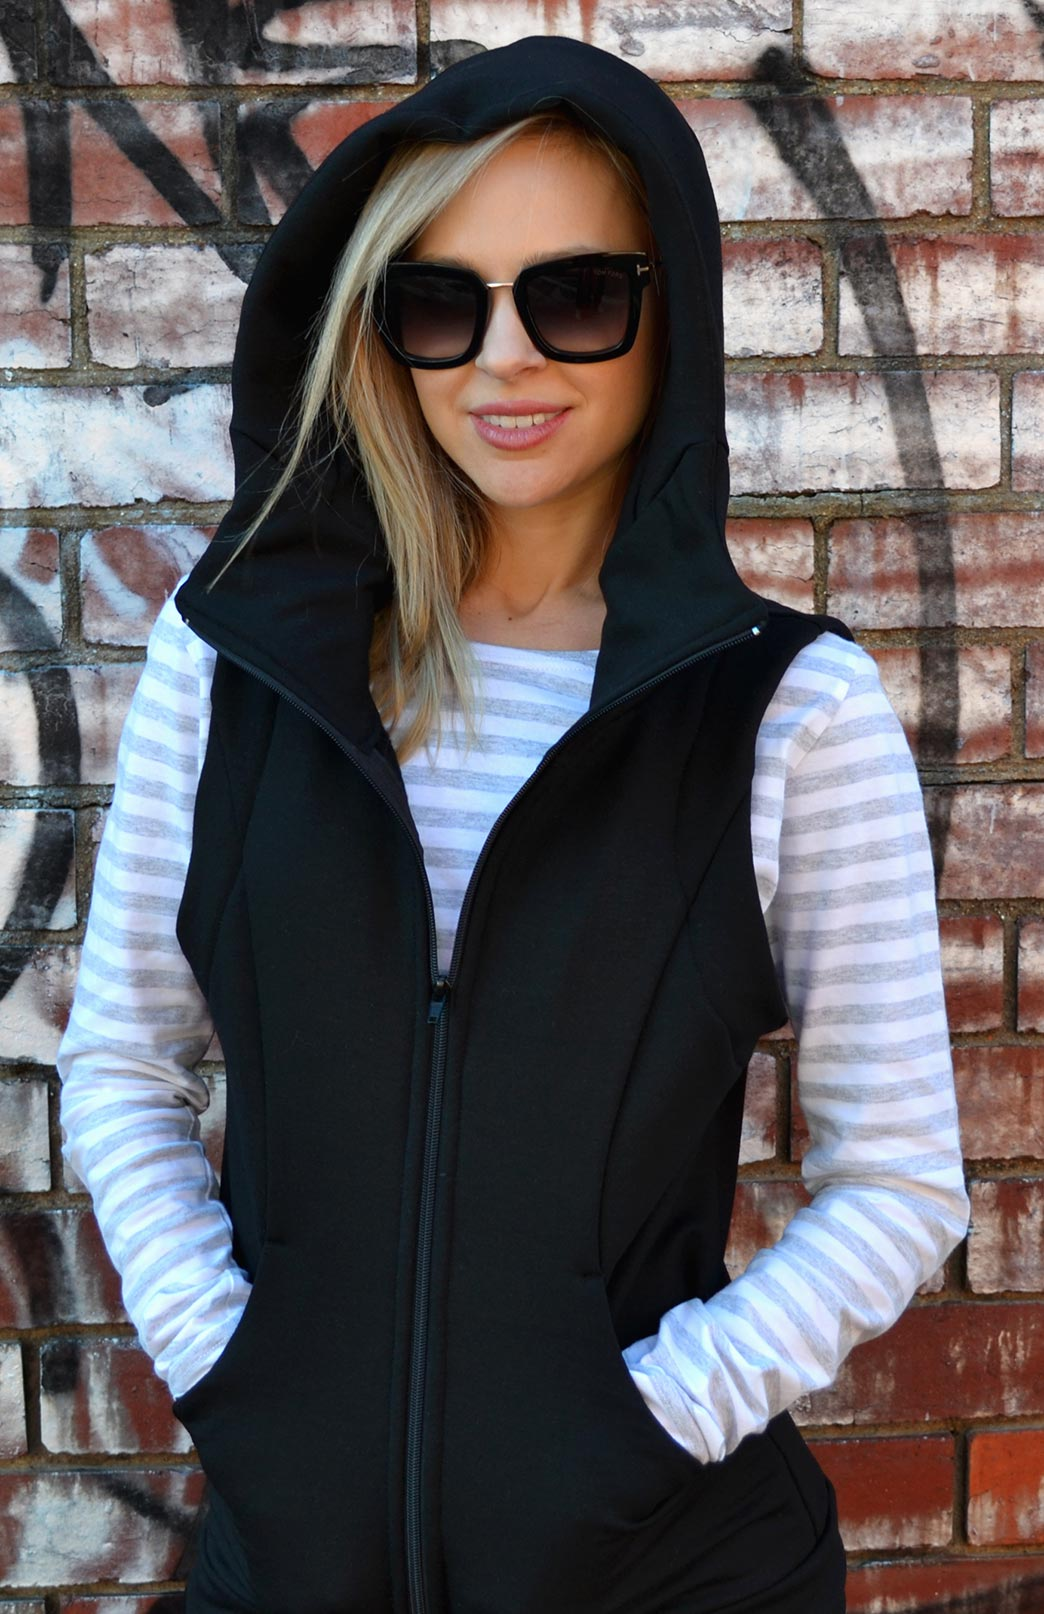 Fitted Fleece Vest with Hood - Women's Fitted Merino Wool Fleece Vest with Deep Pockets and Double Layer Hood - Smitten Merino Tasmania Australia